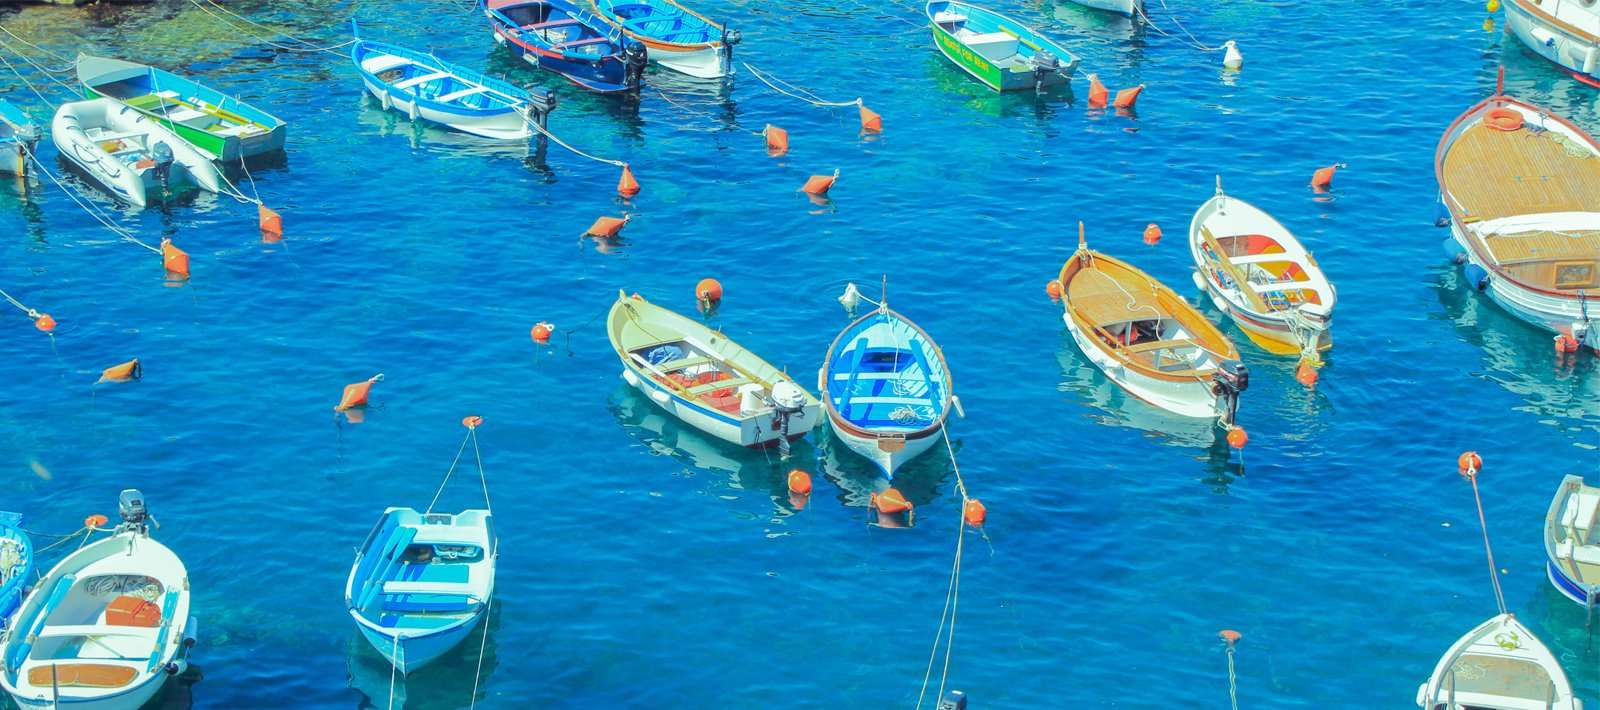 boats of different colors